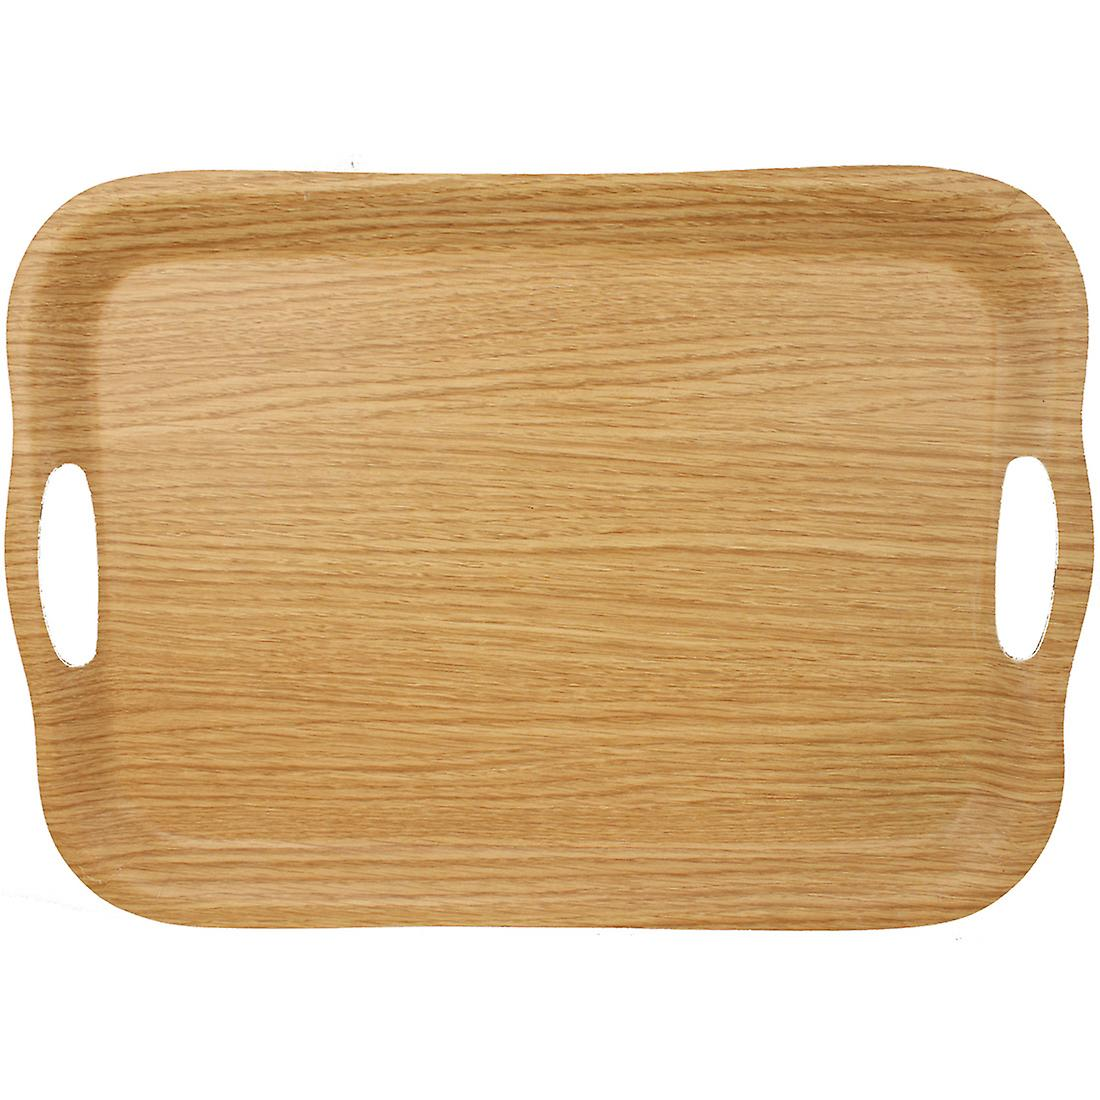 Non-Slip Tray - Small